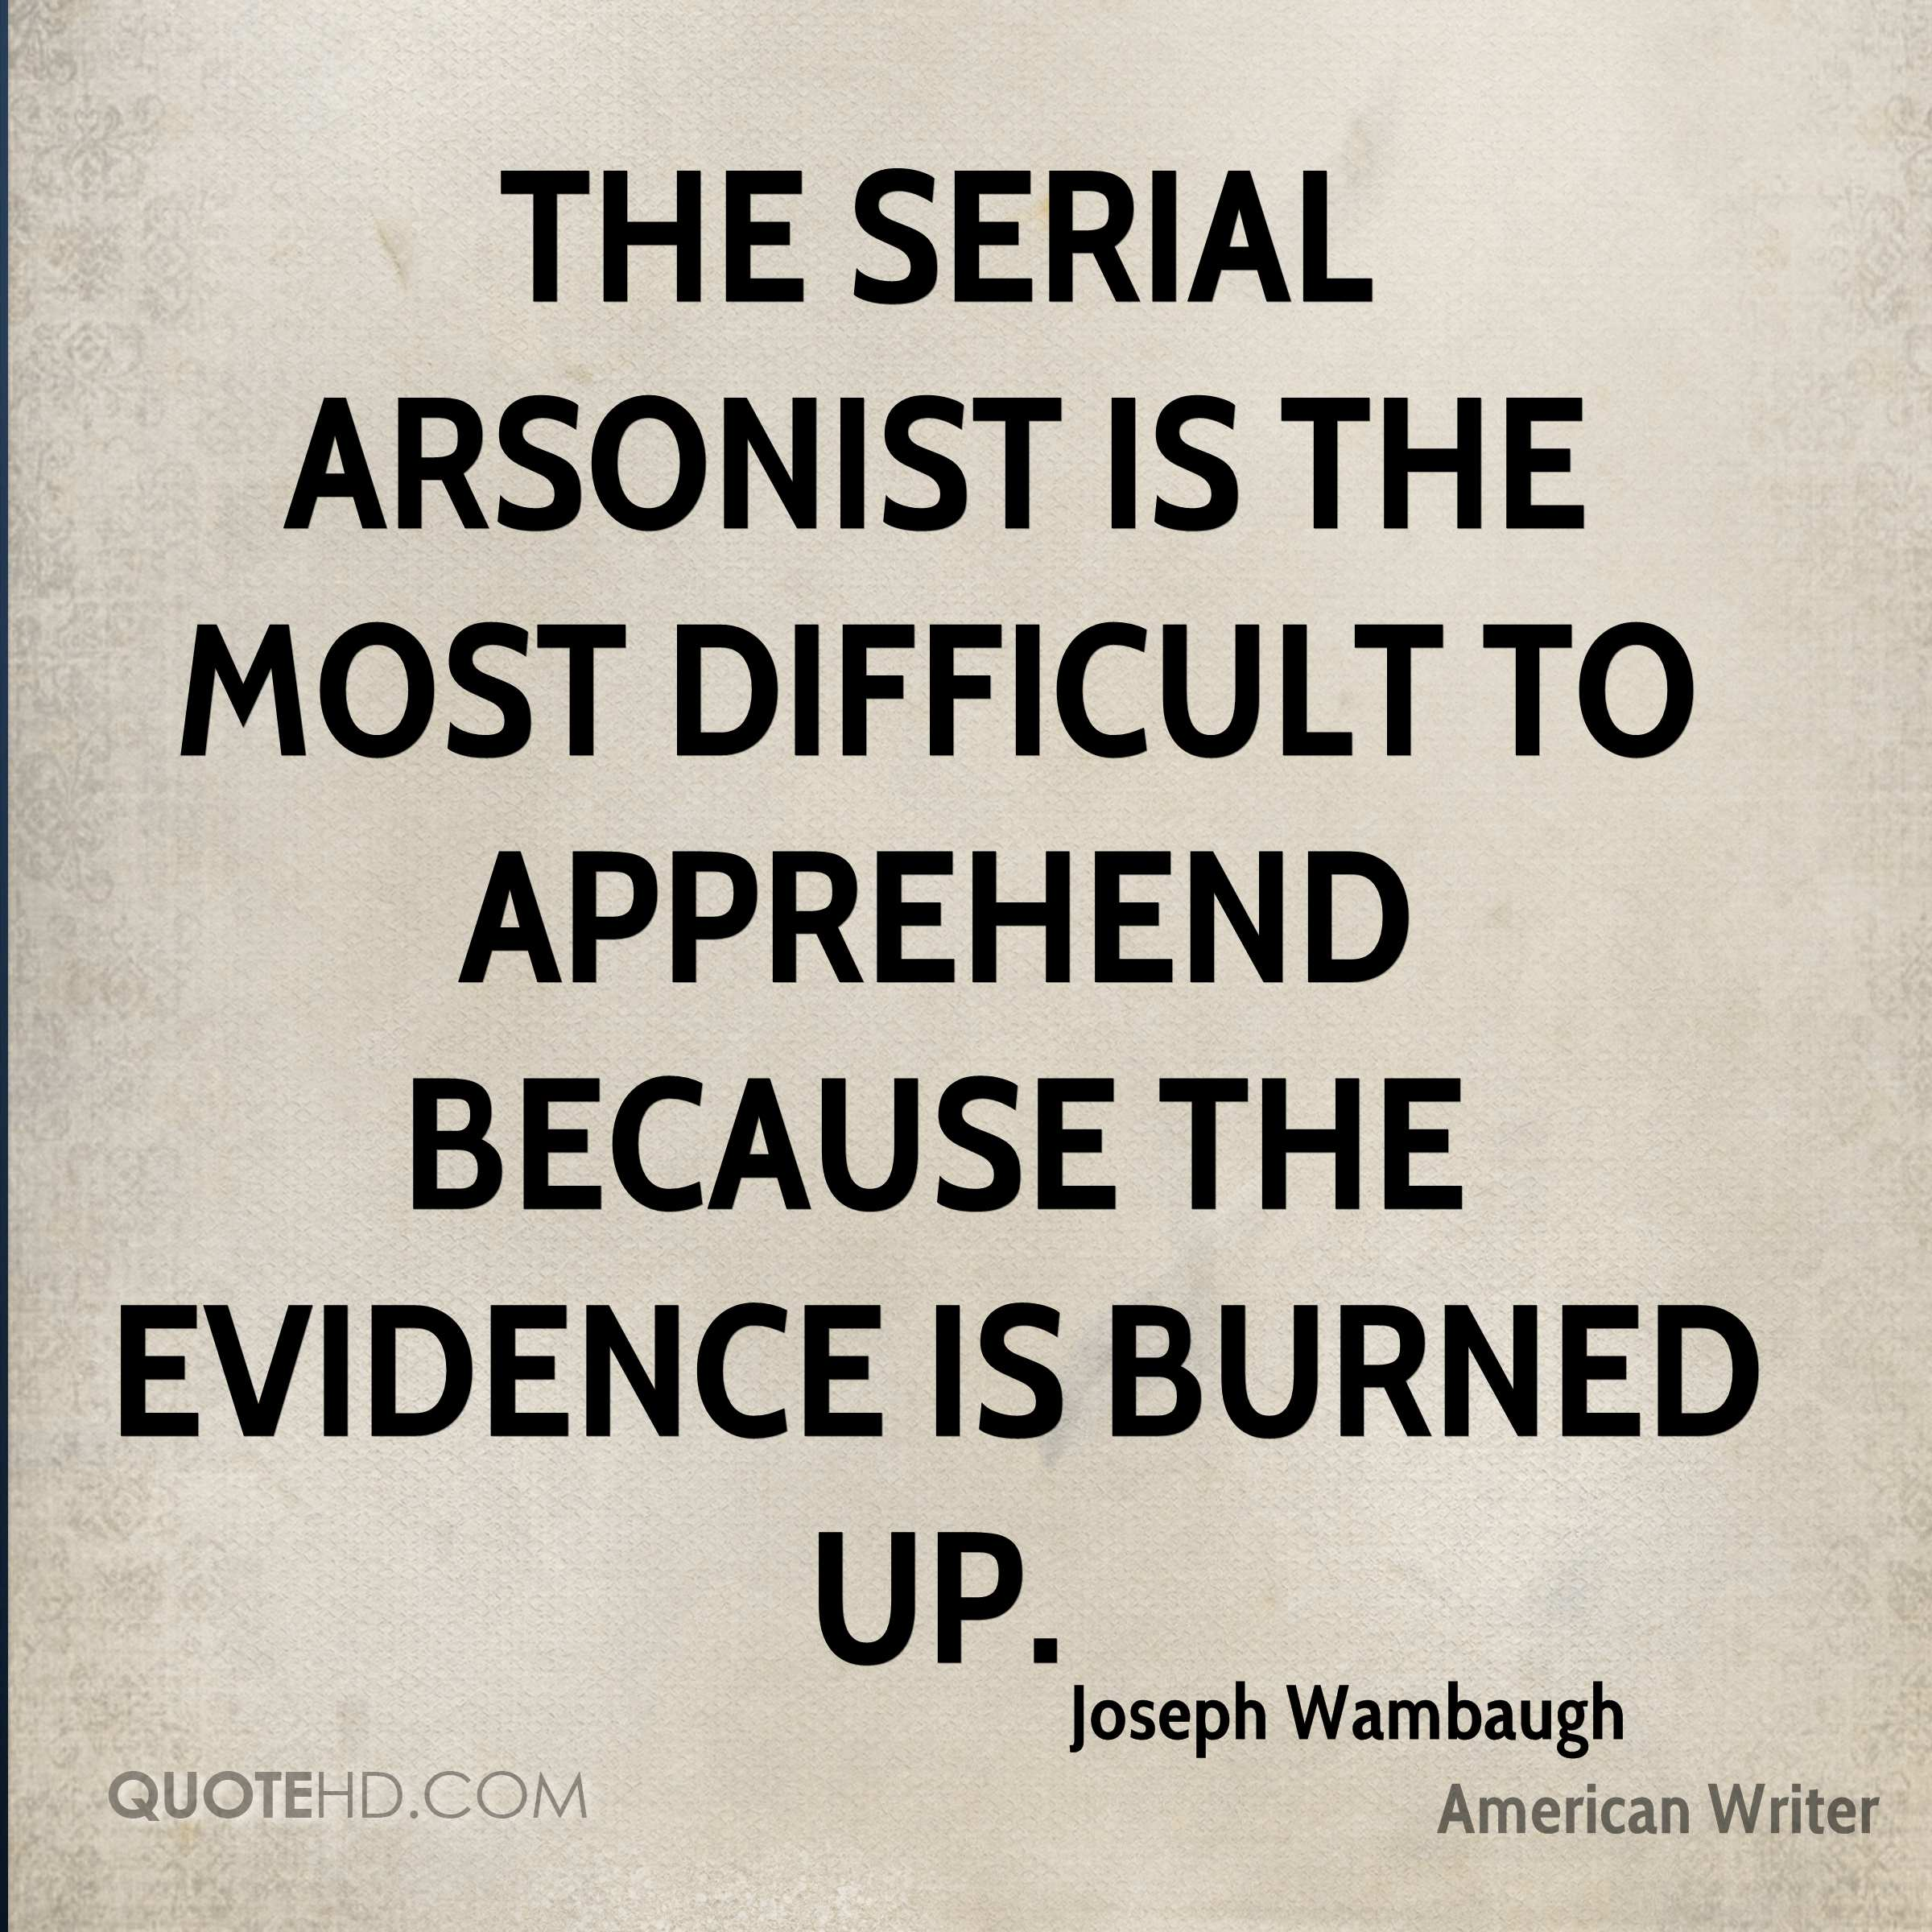 The serial arsonist is the most difficult to apprehend because the evidence is burned up.